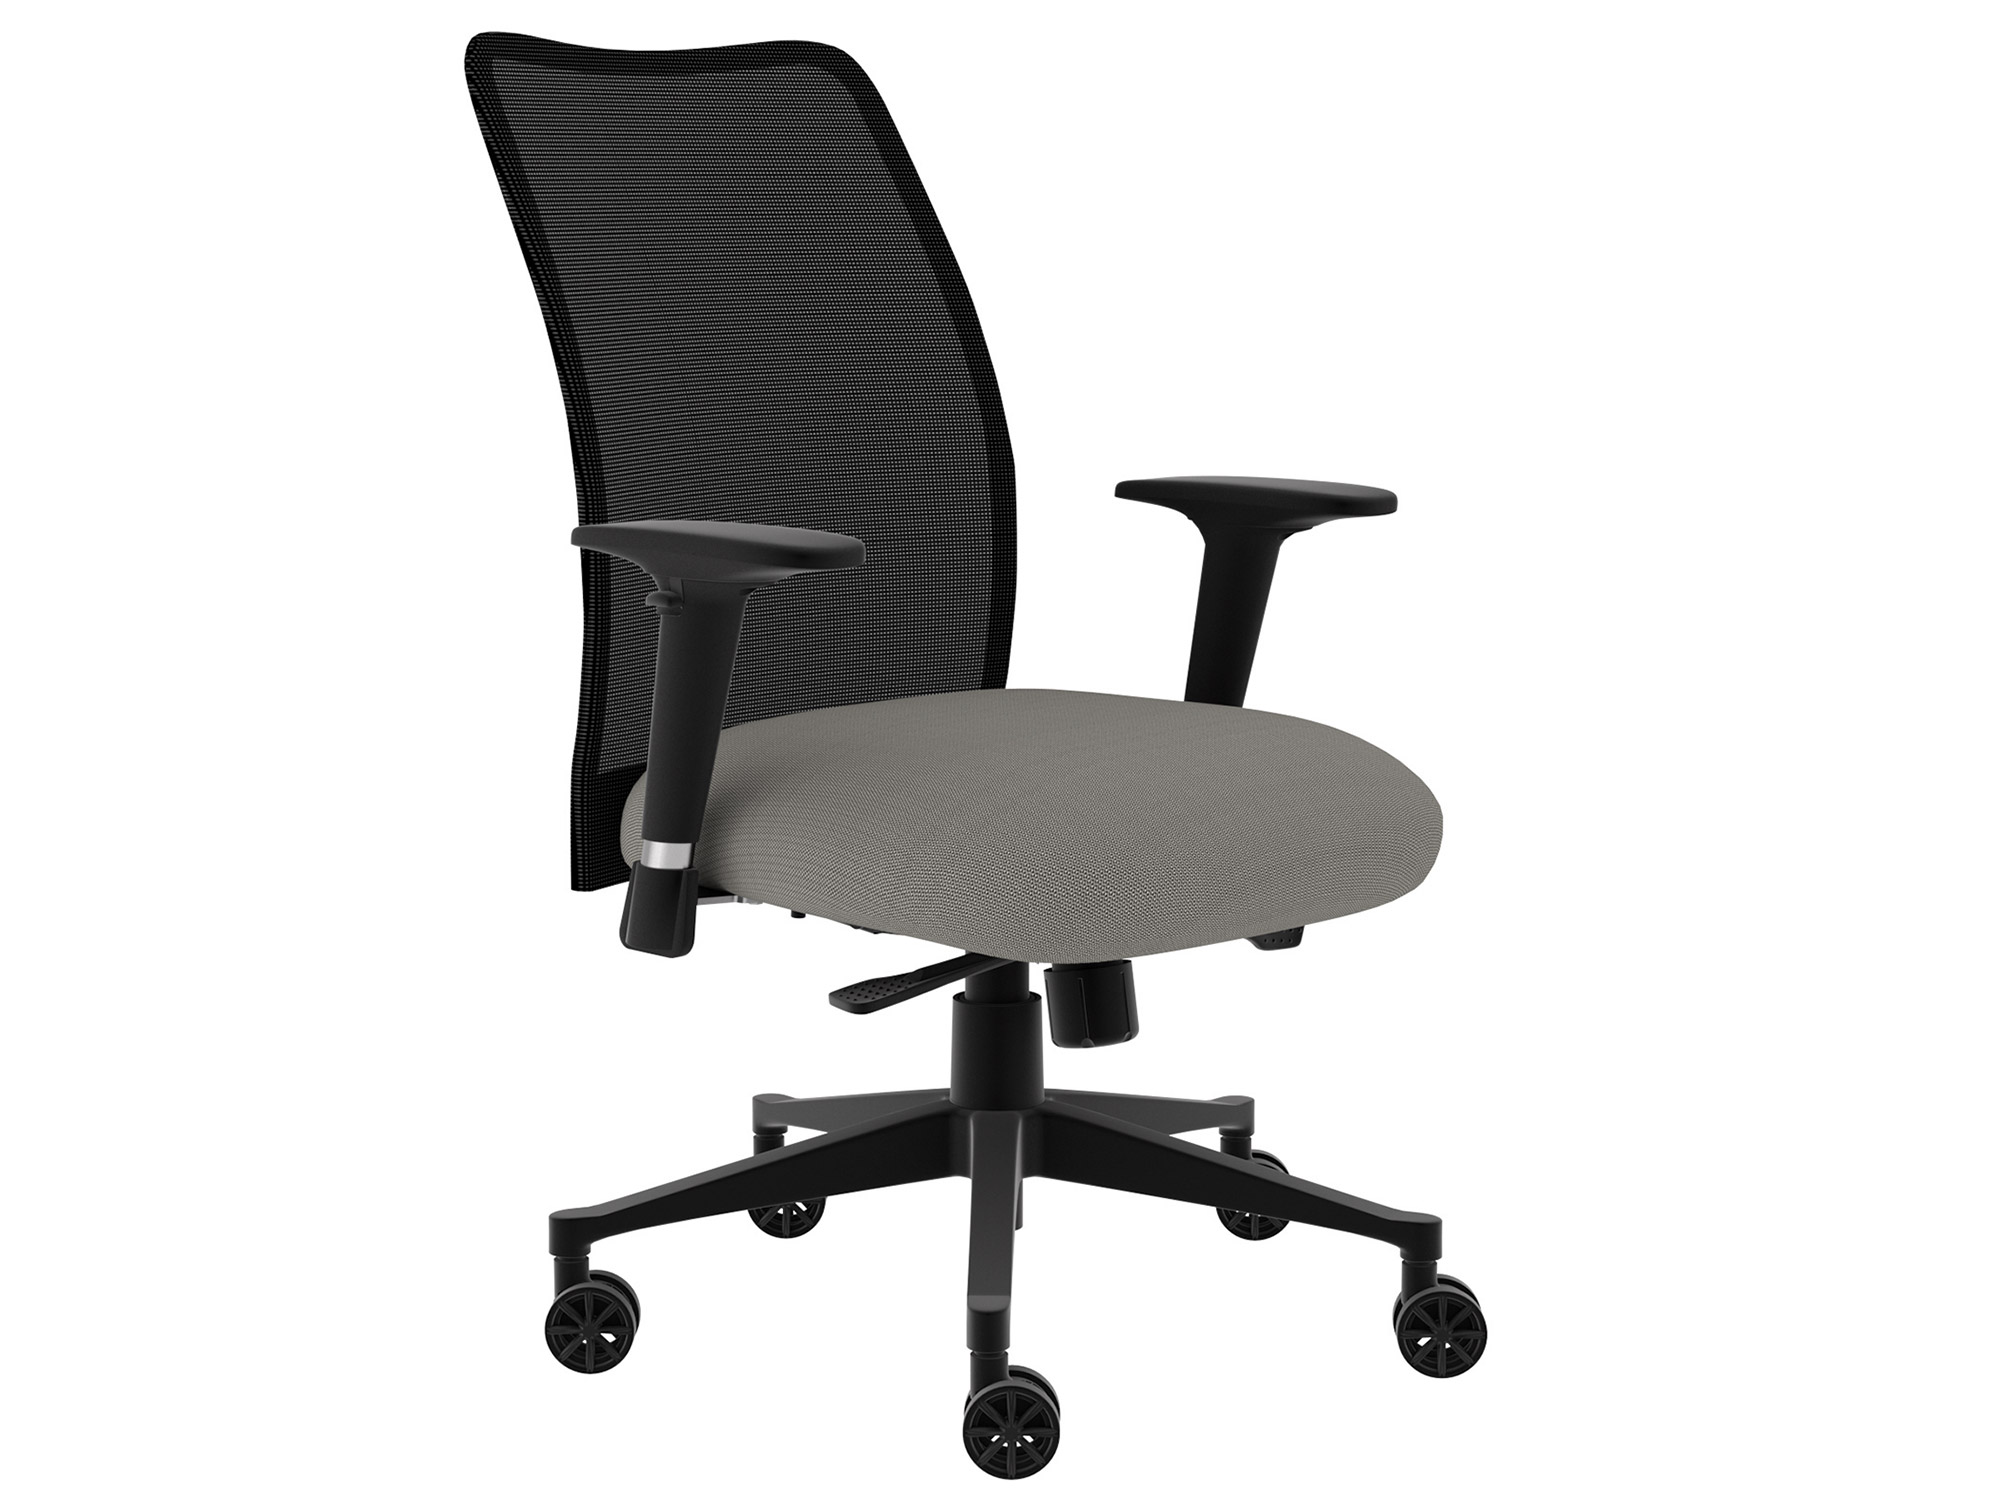 Orange Office Chair Office Task Chairs Chairs For Office : office task chairs argos mercury grey from www.cubicles.com size 2000 x 1504 jpeg 269kB